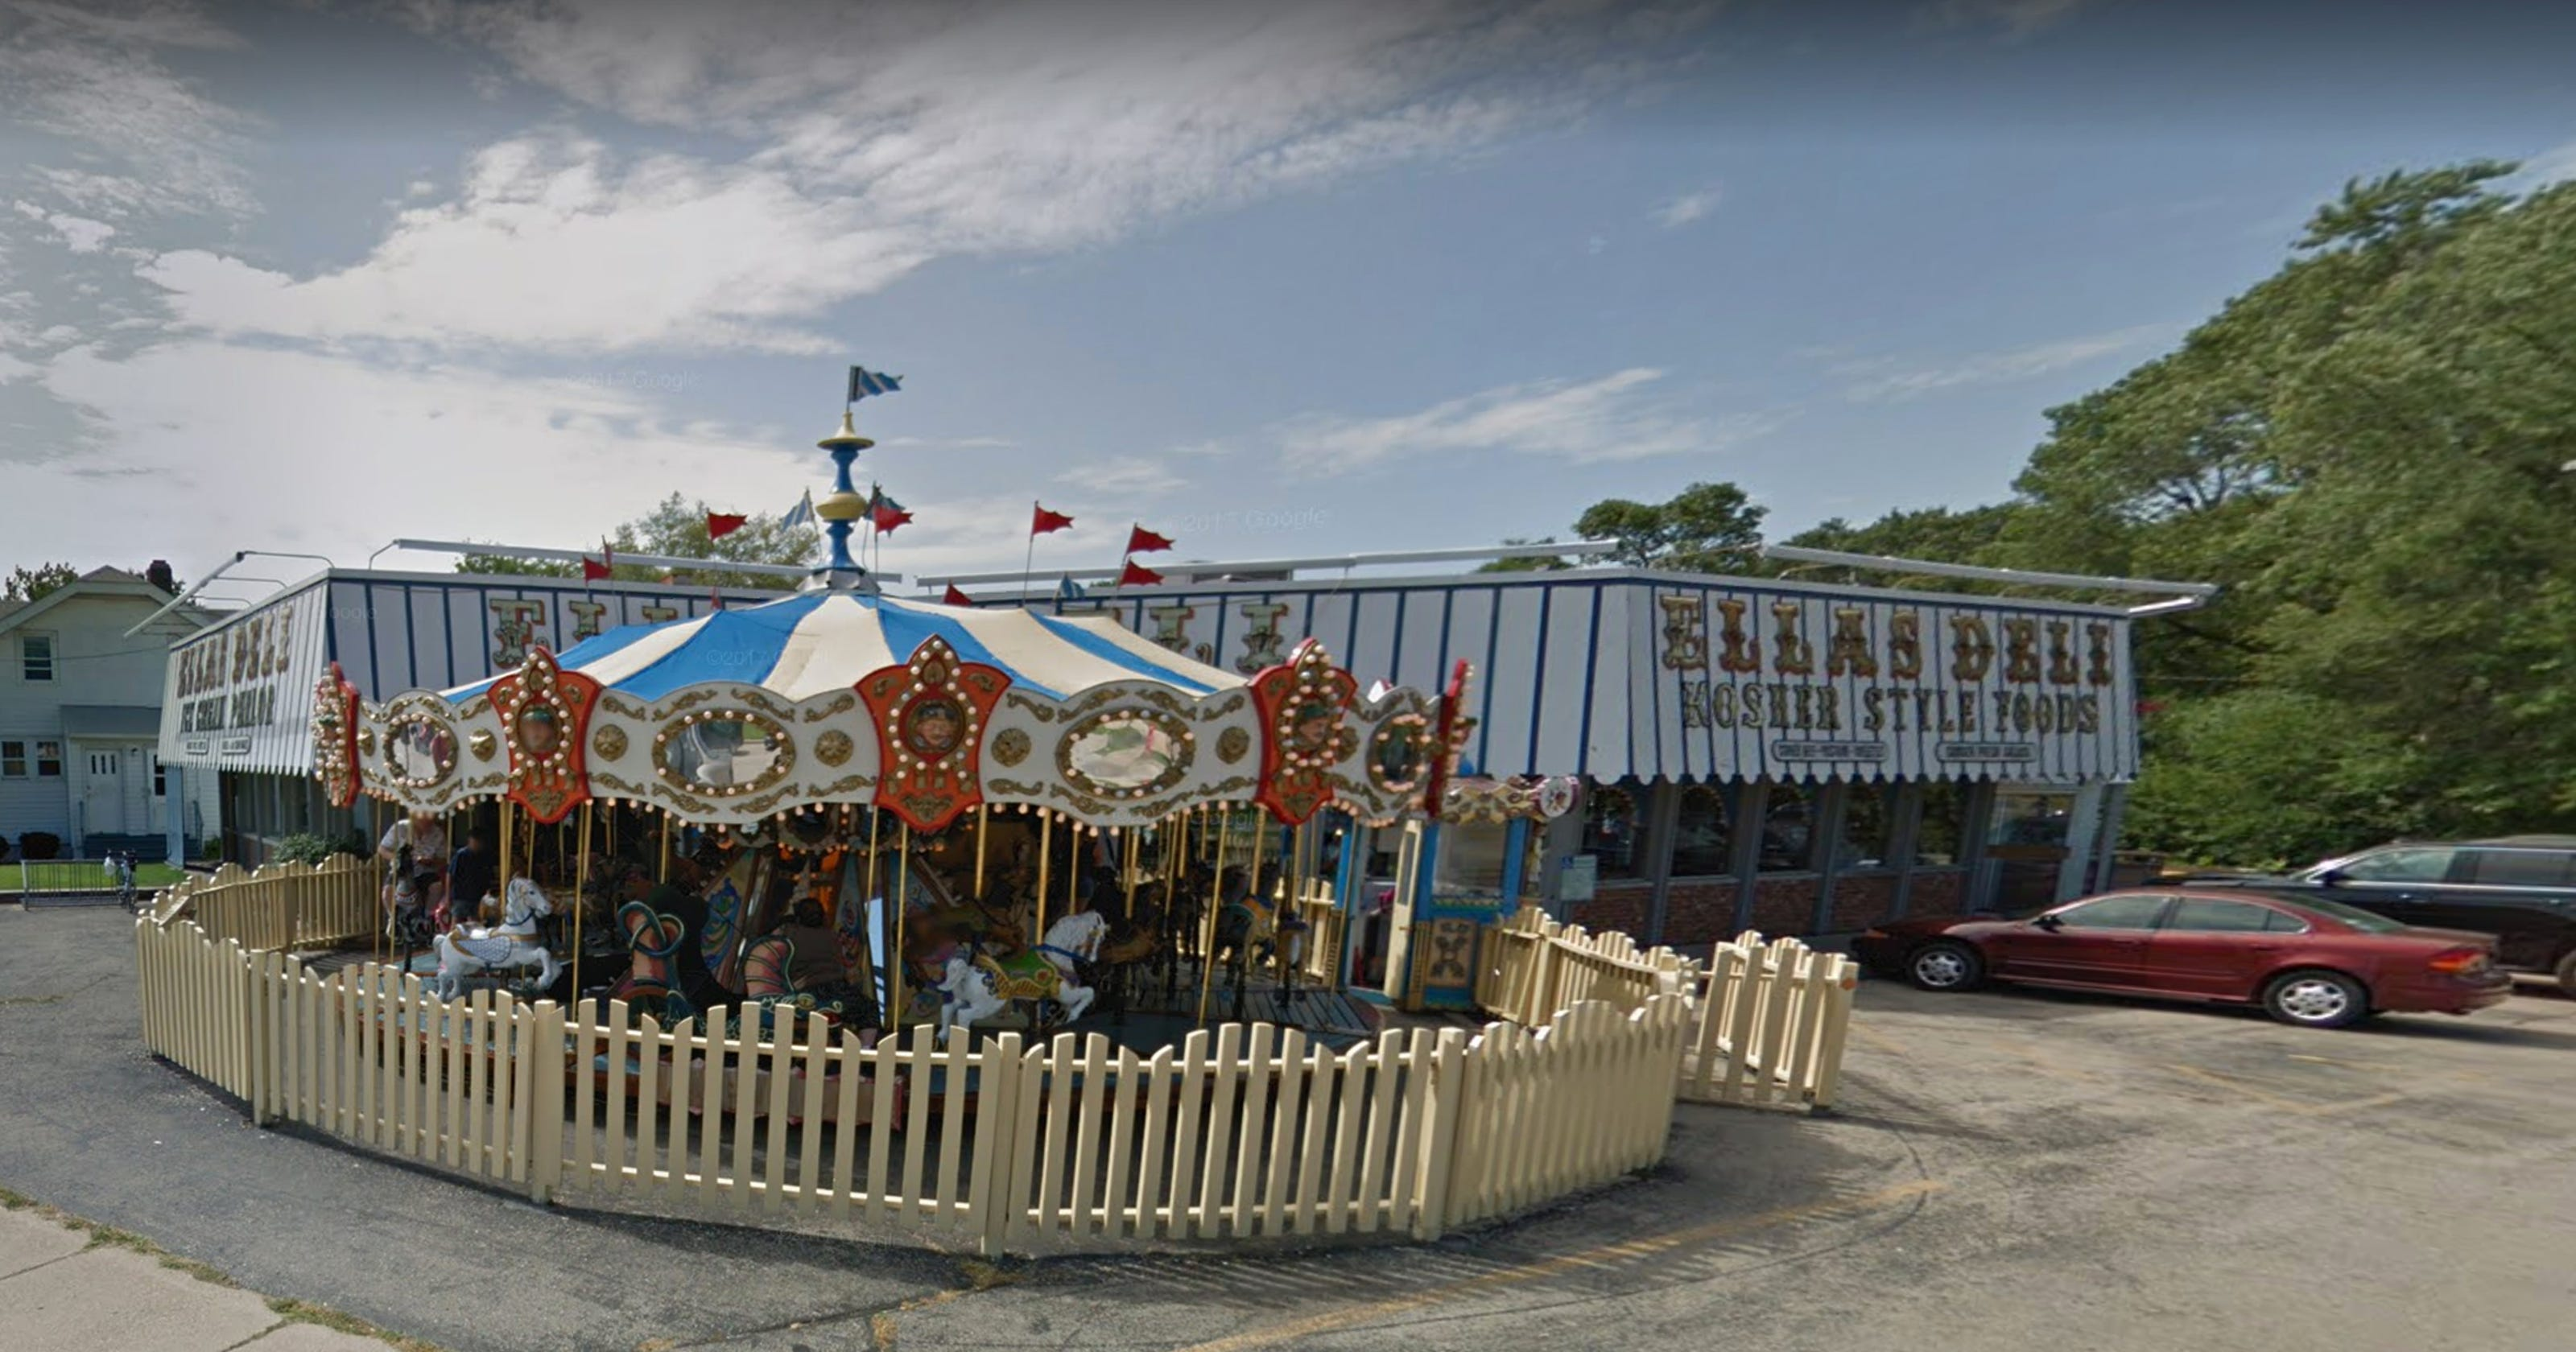 Epic Madison Wi >> Epic bought the carousel that was in front of Ella's Deli in Madison